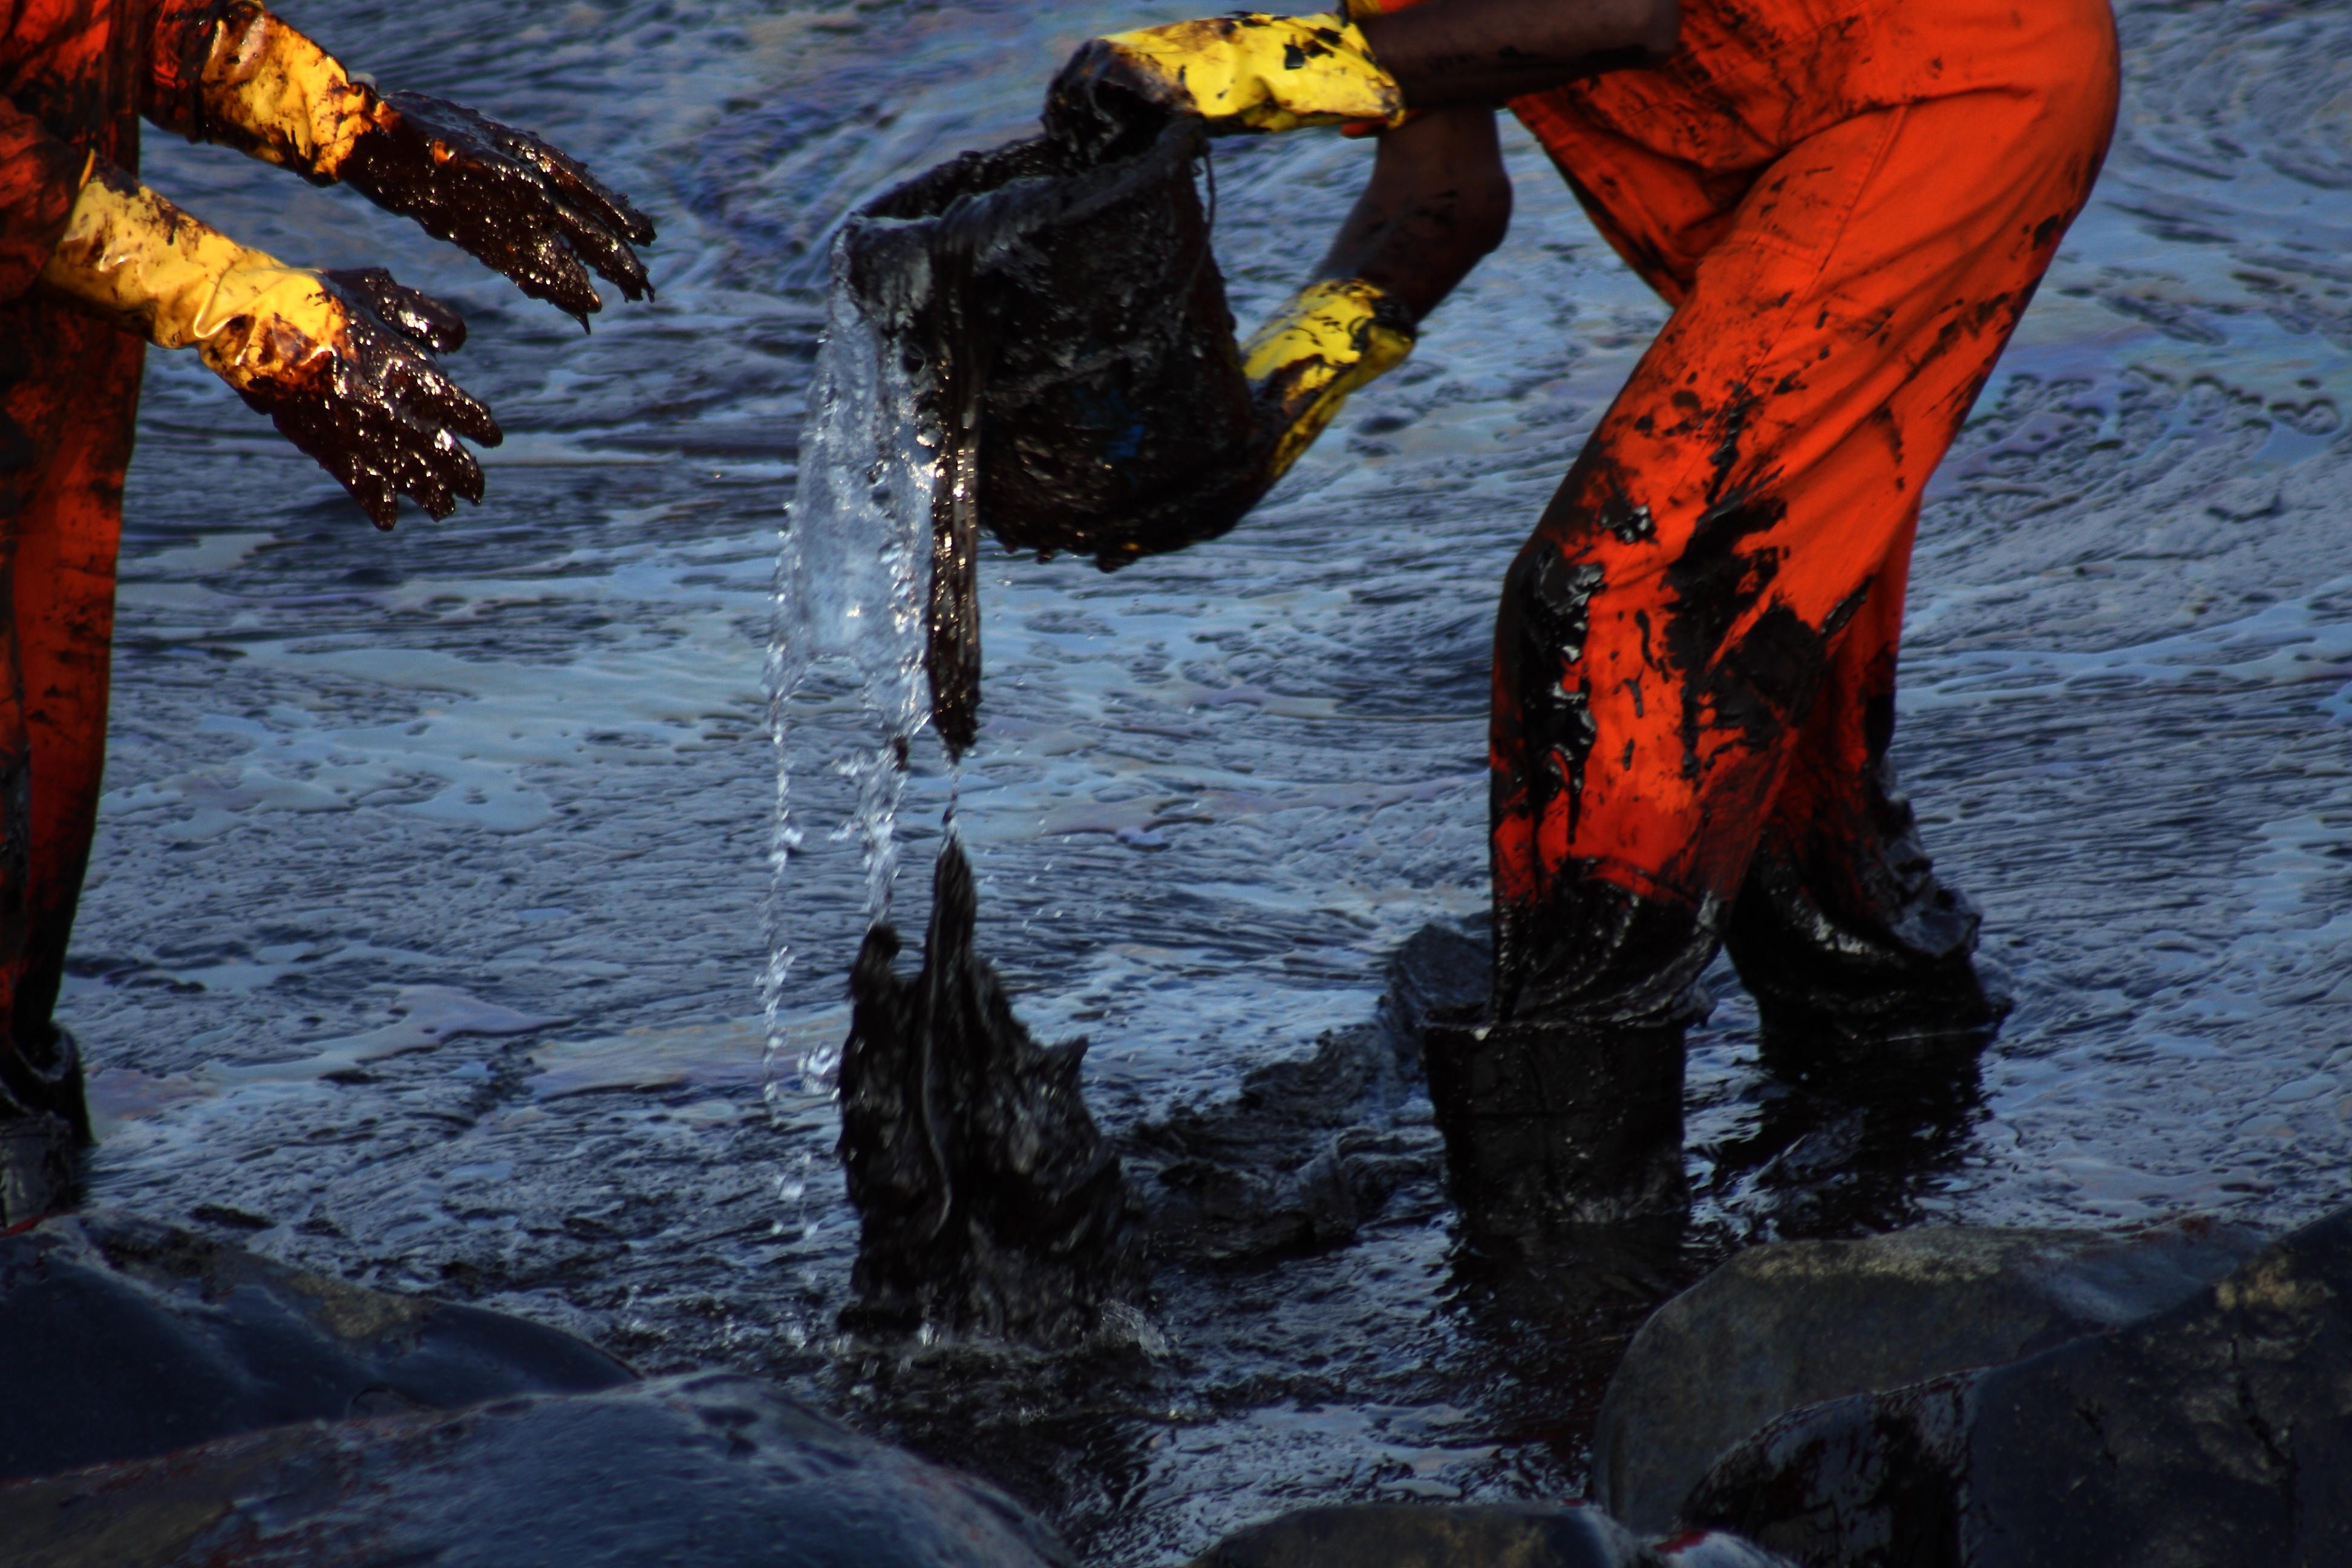 Group against transfer of power to supervise oil spills